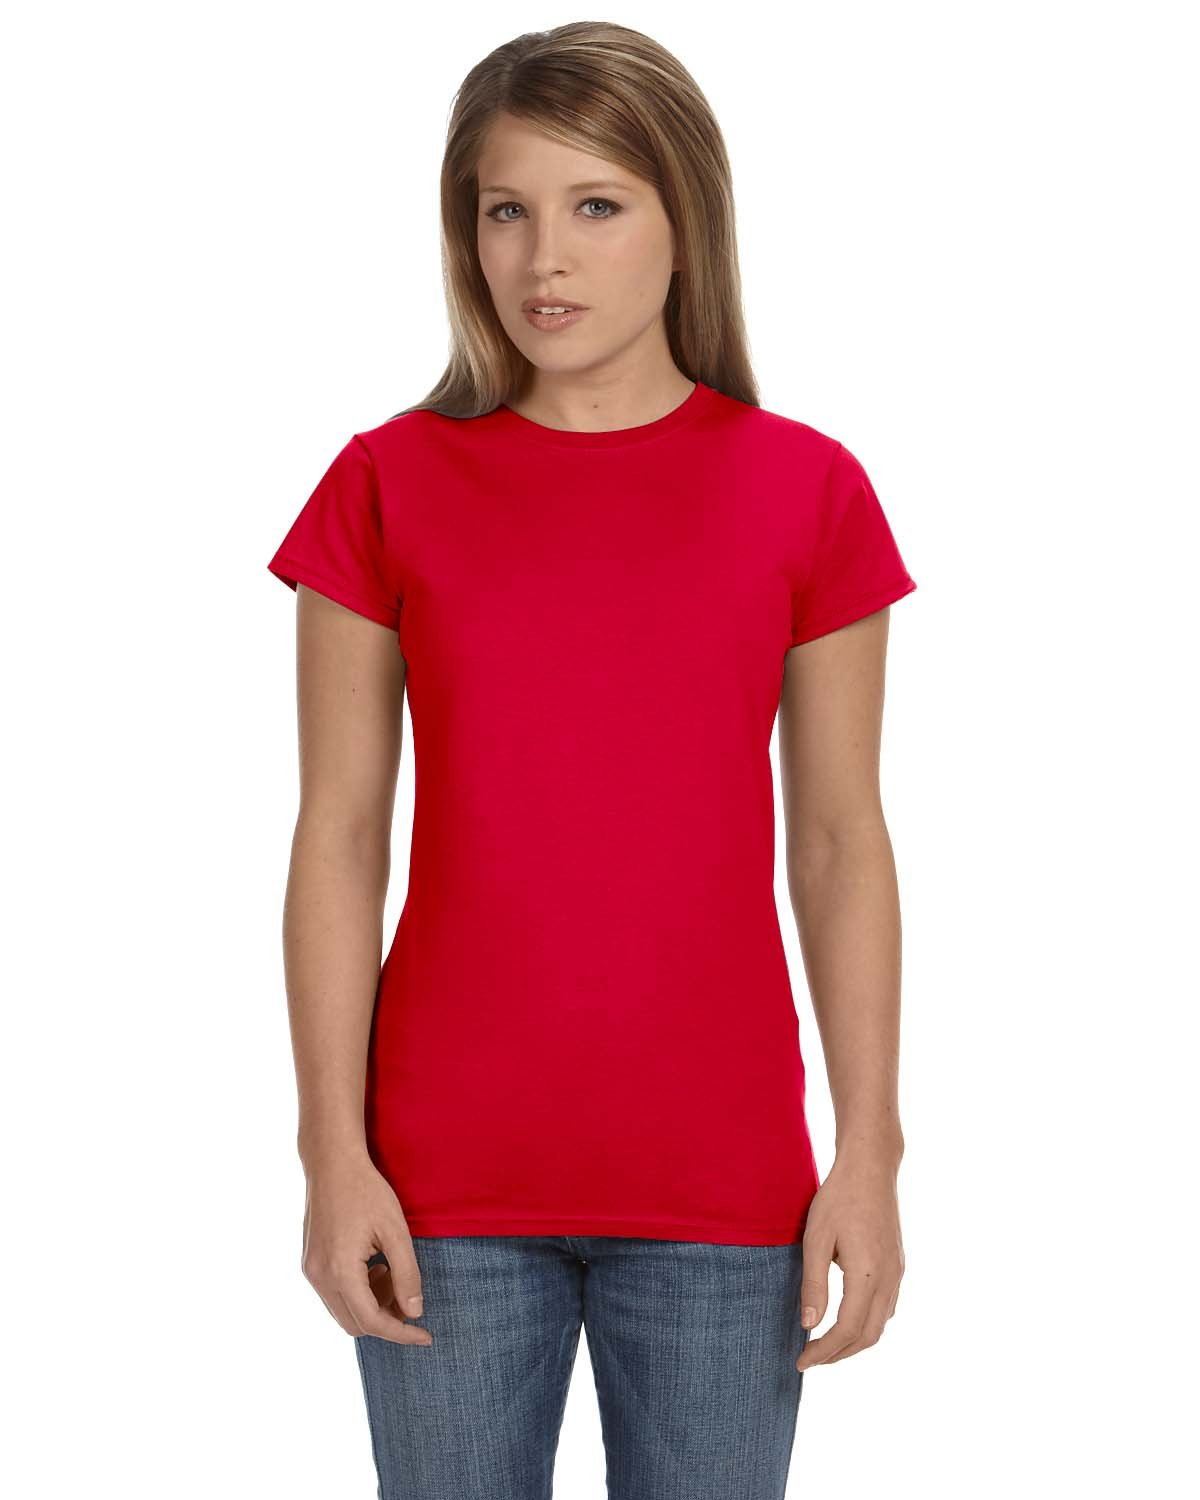 Gildan Ladies' Softstyle® 4.5 oz Fitted T-Shirt RED